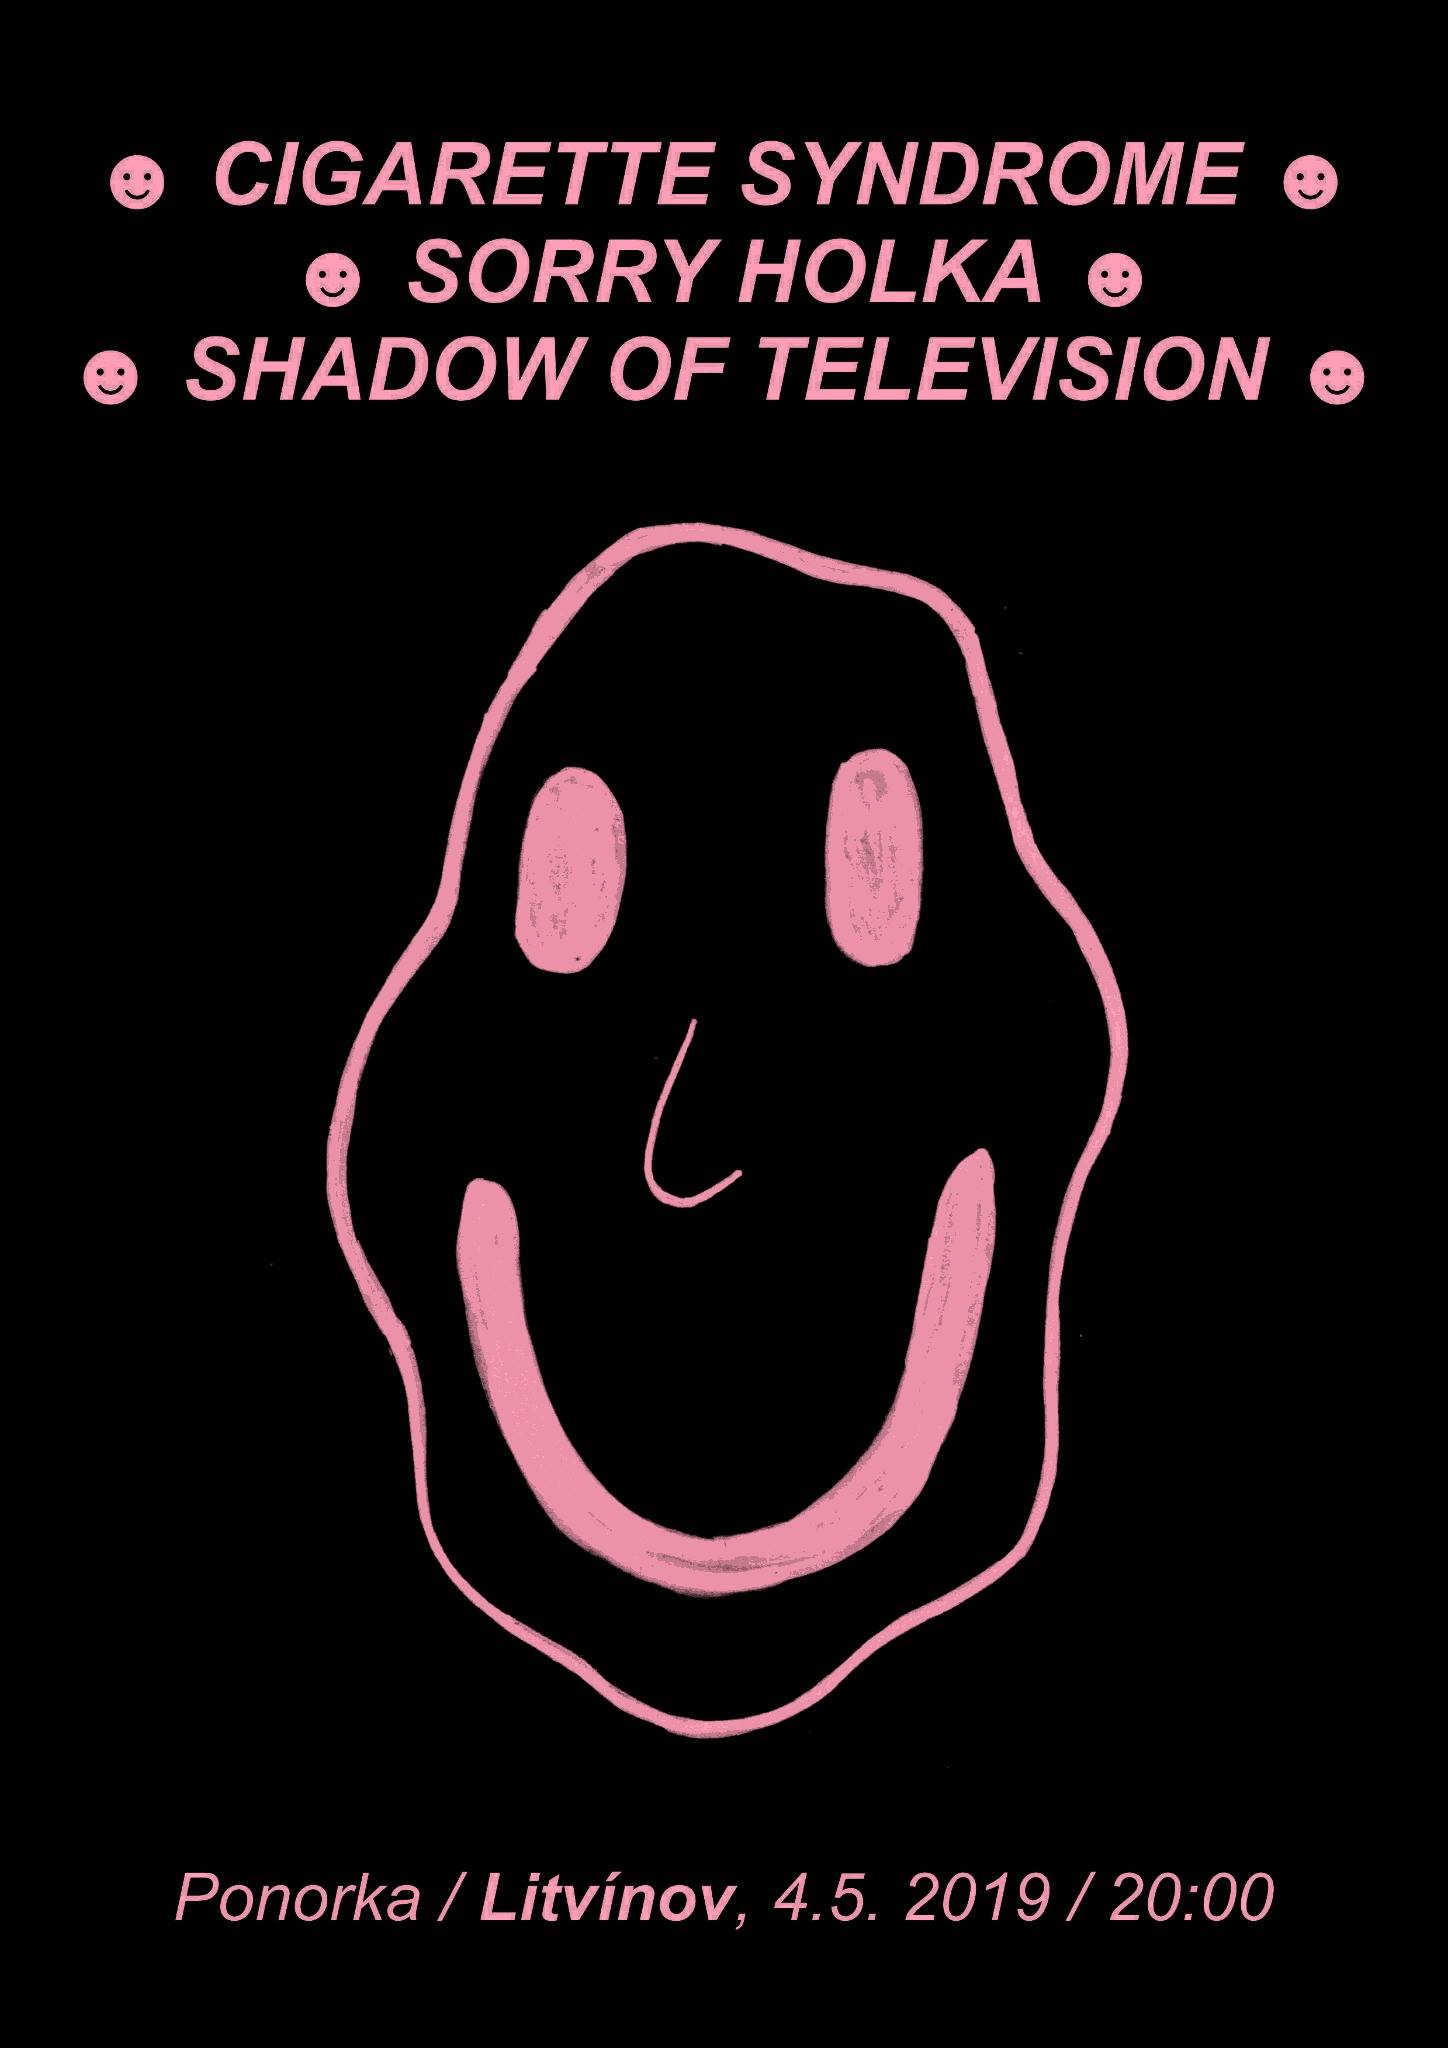 SHADOW OF TELEVISION [SK] + CIGARETTE SYNDROME + SORRY HOLKA